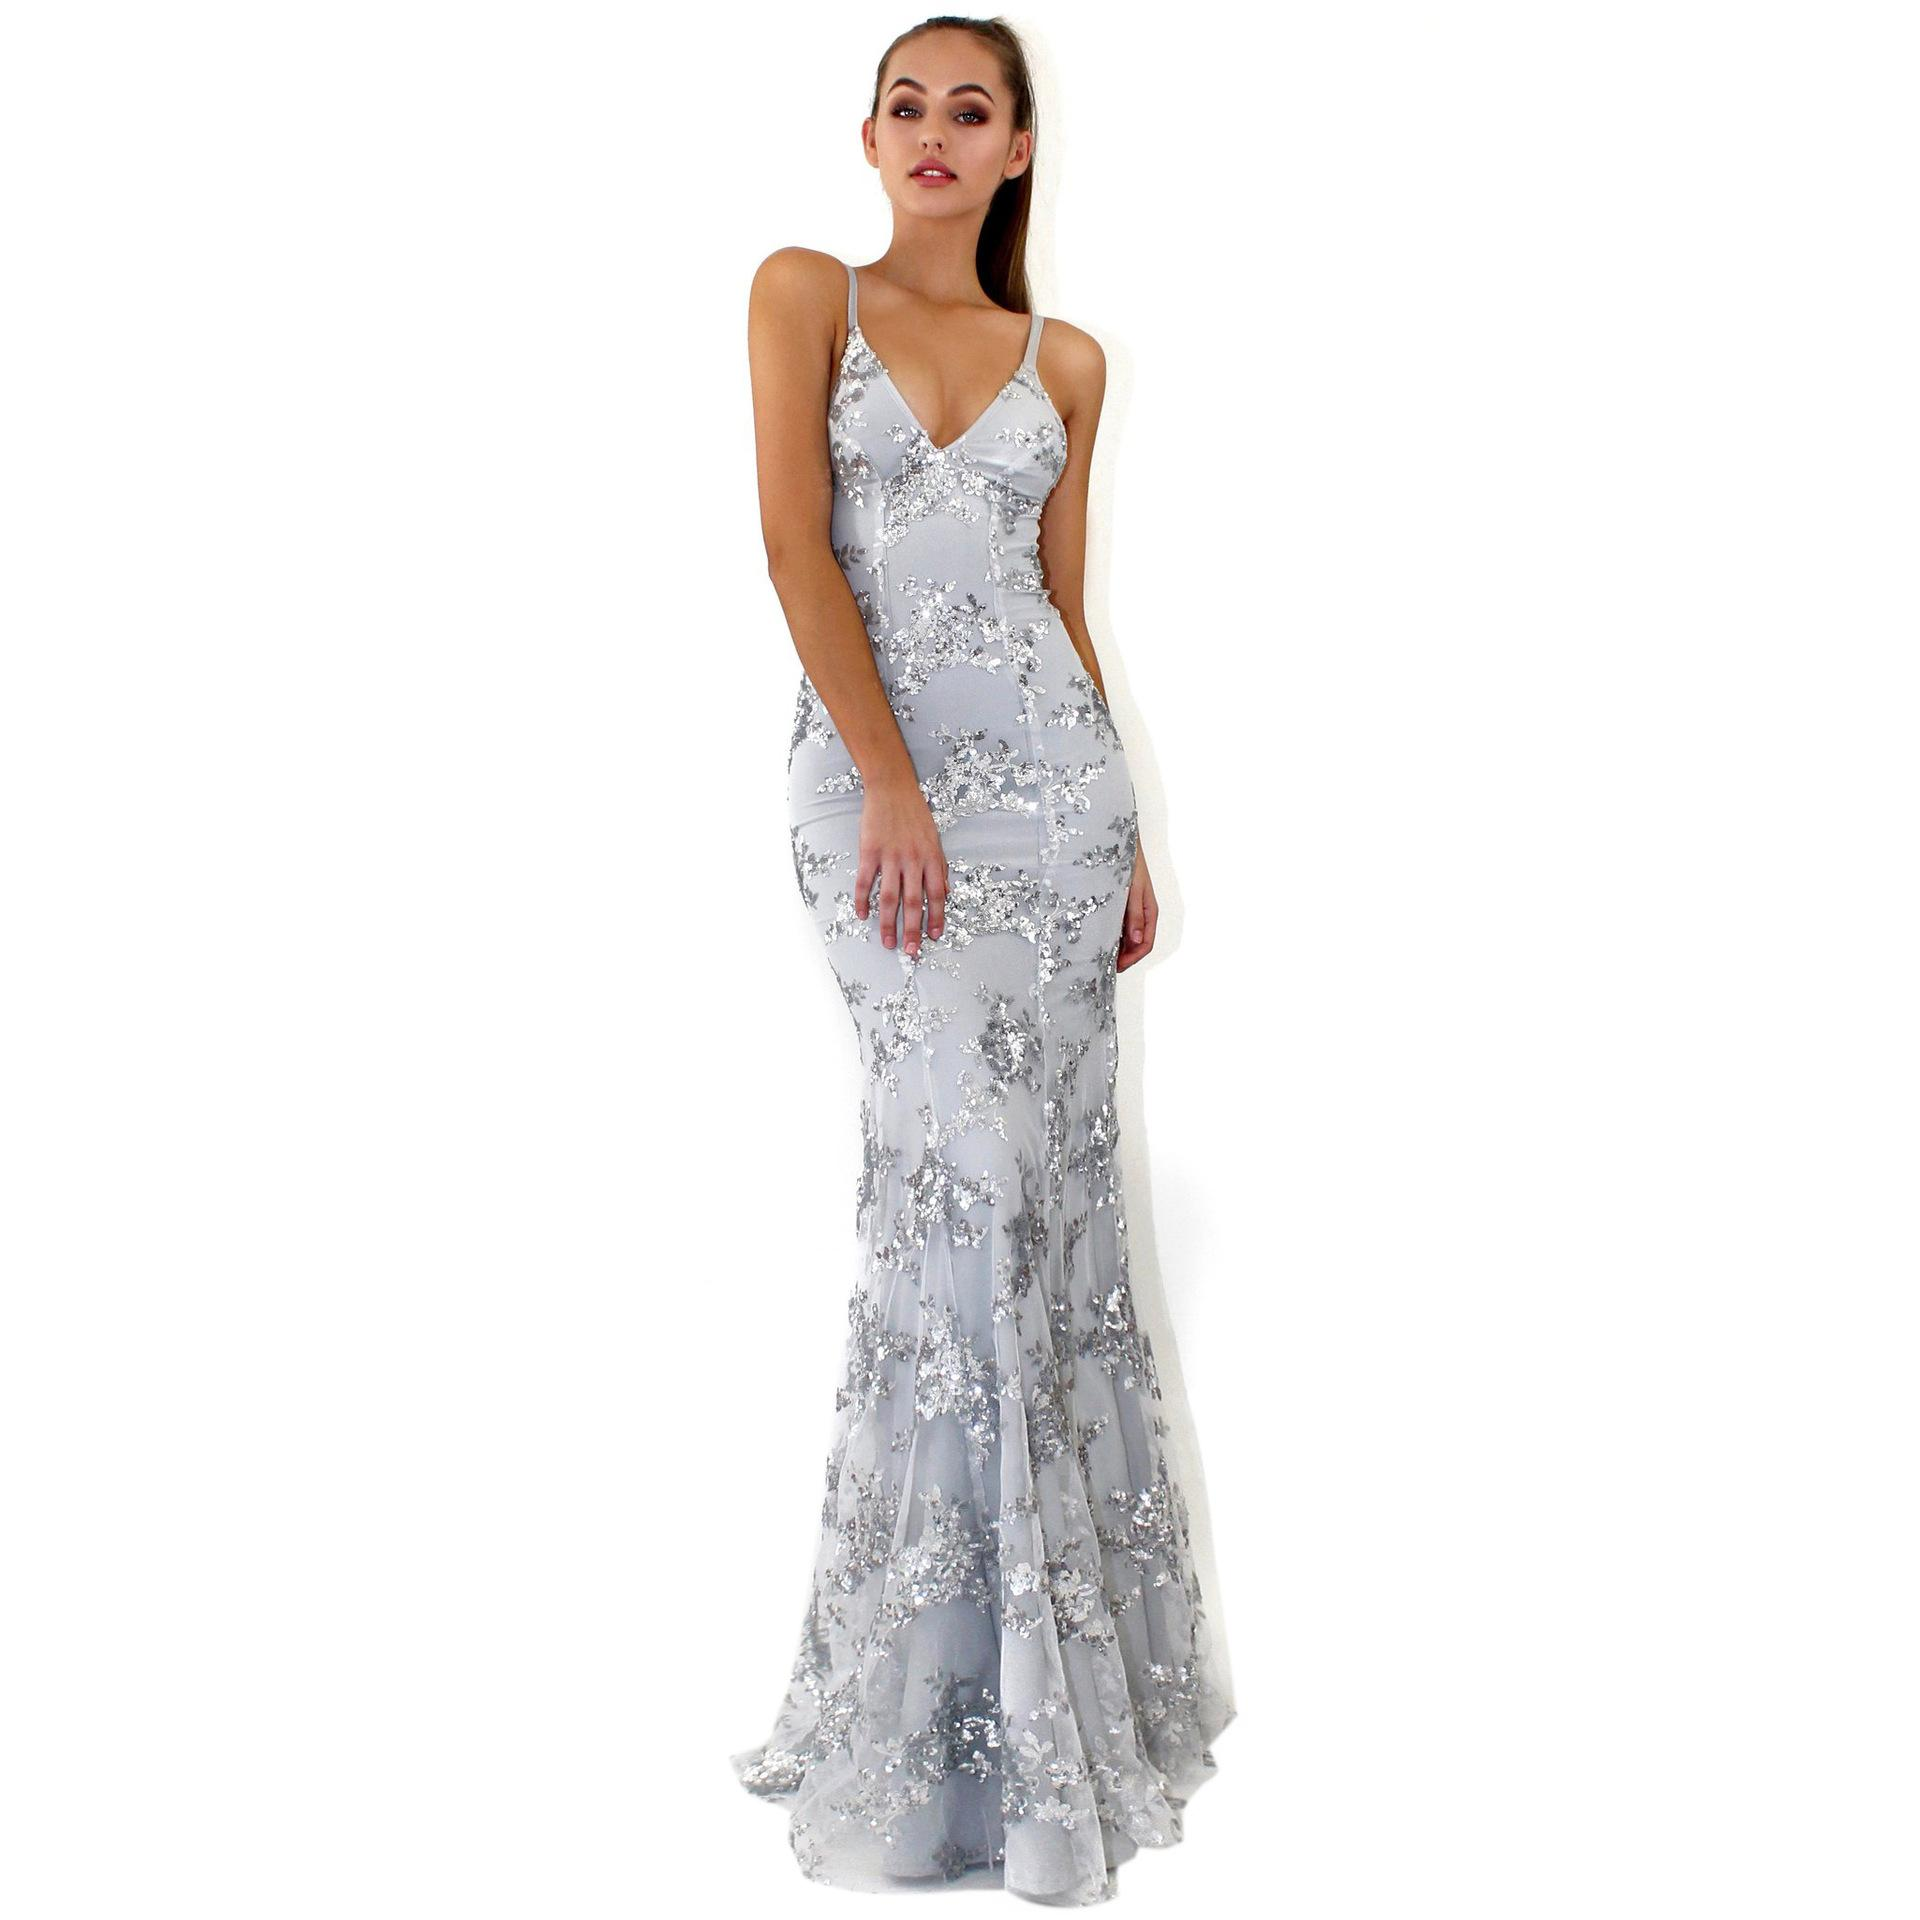 1d2afff0643 2019 Sexy Sequin Lace Party Dress V Neck Sleeveless Wrap Floor Length Maxi  Dresses Evening Prom Gown Women Mesh Long Vestidos Robe De Soiree From ...